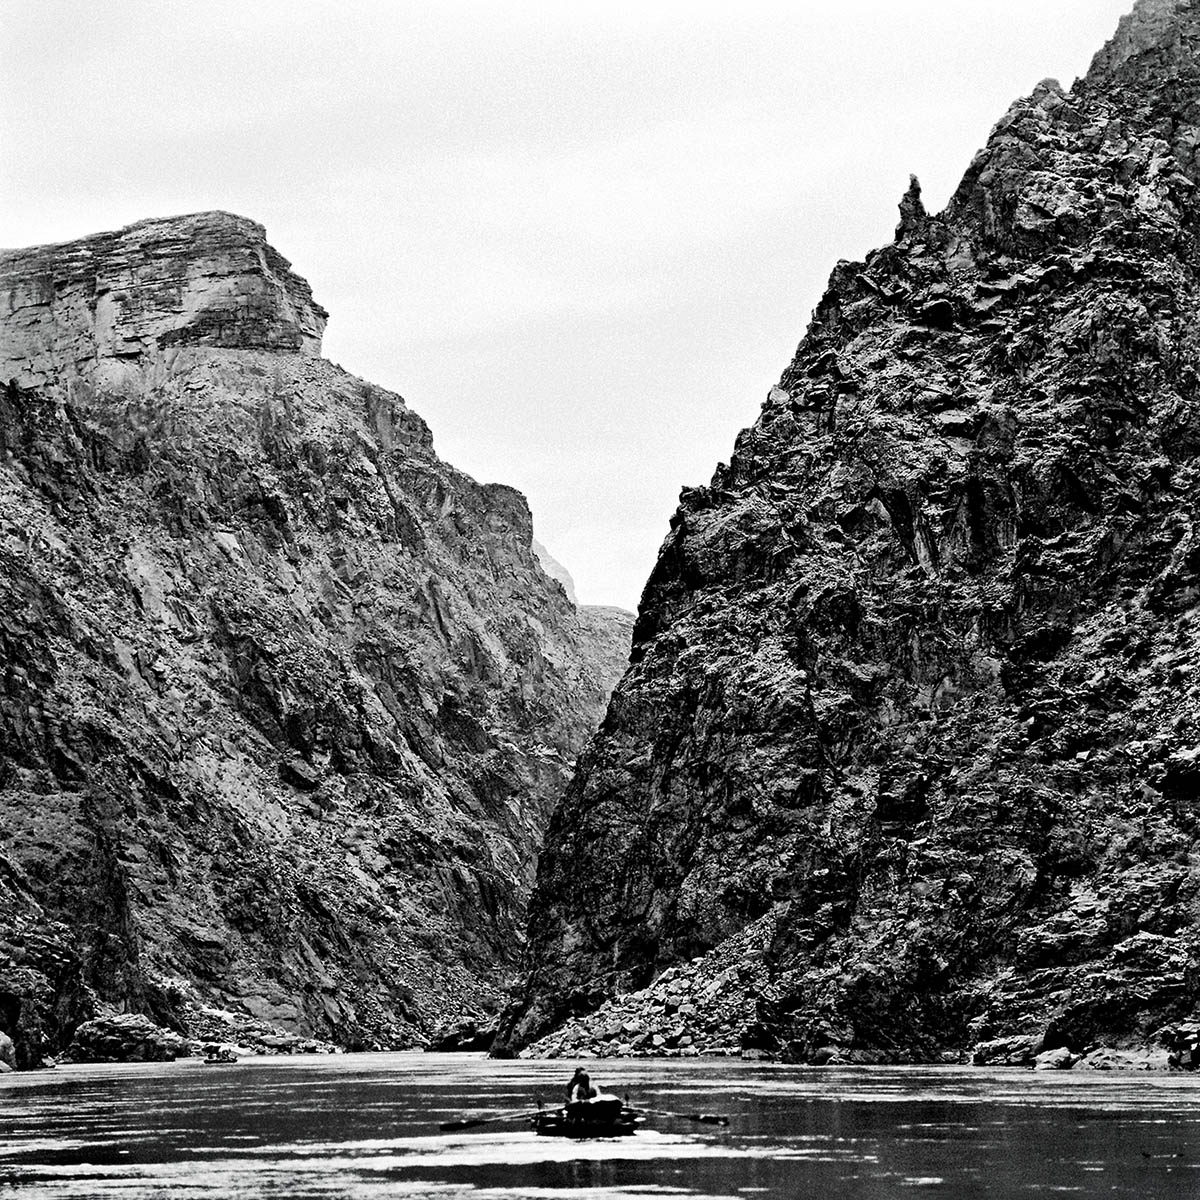 Colorado River, Grand Canyon, Arizona, 1975